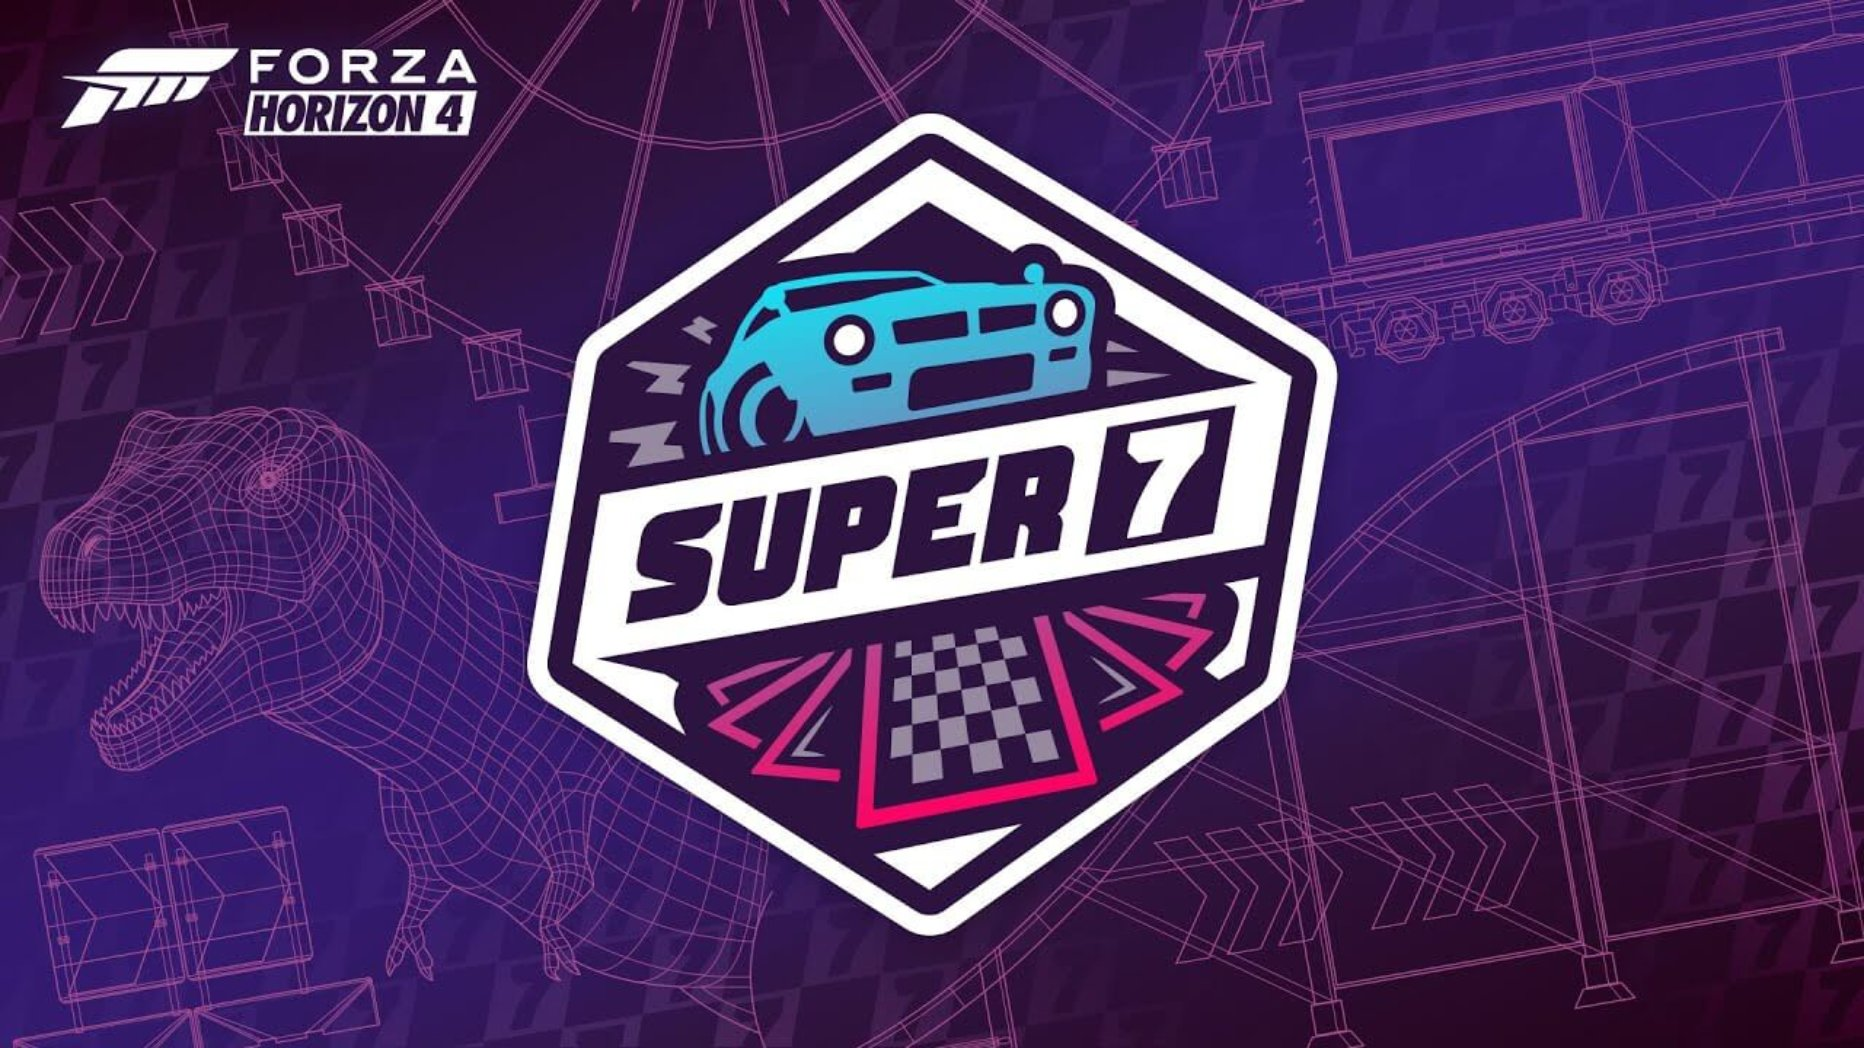 WATCH: Forza Horizon 4's FREE Super7 Stunt Update Trailer (Out Today)